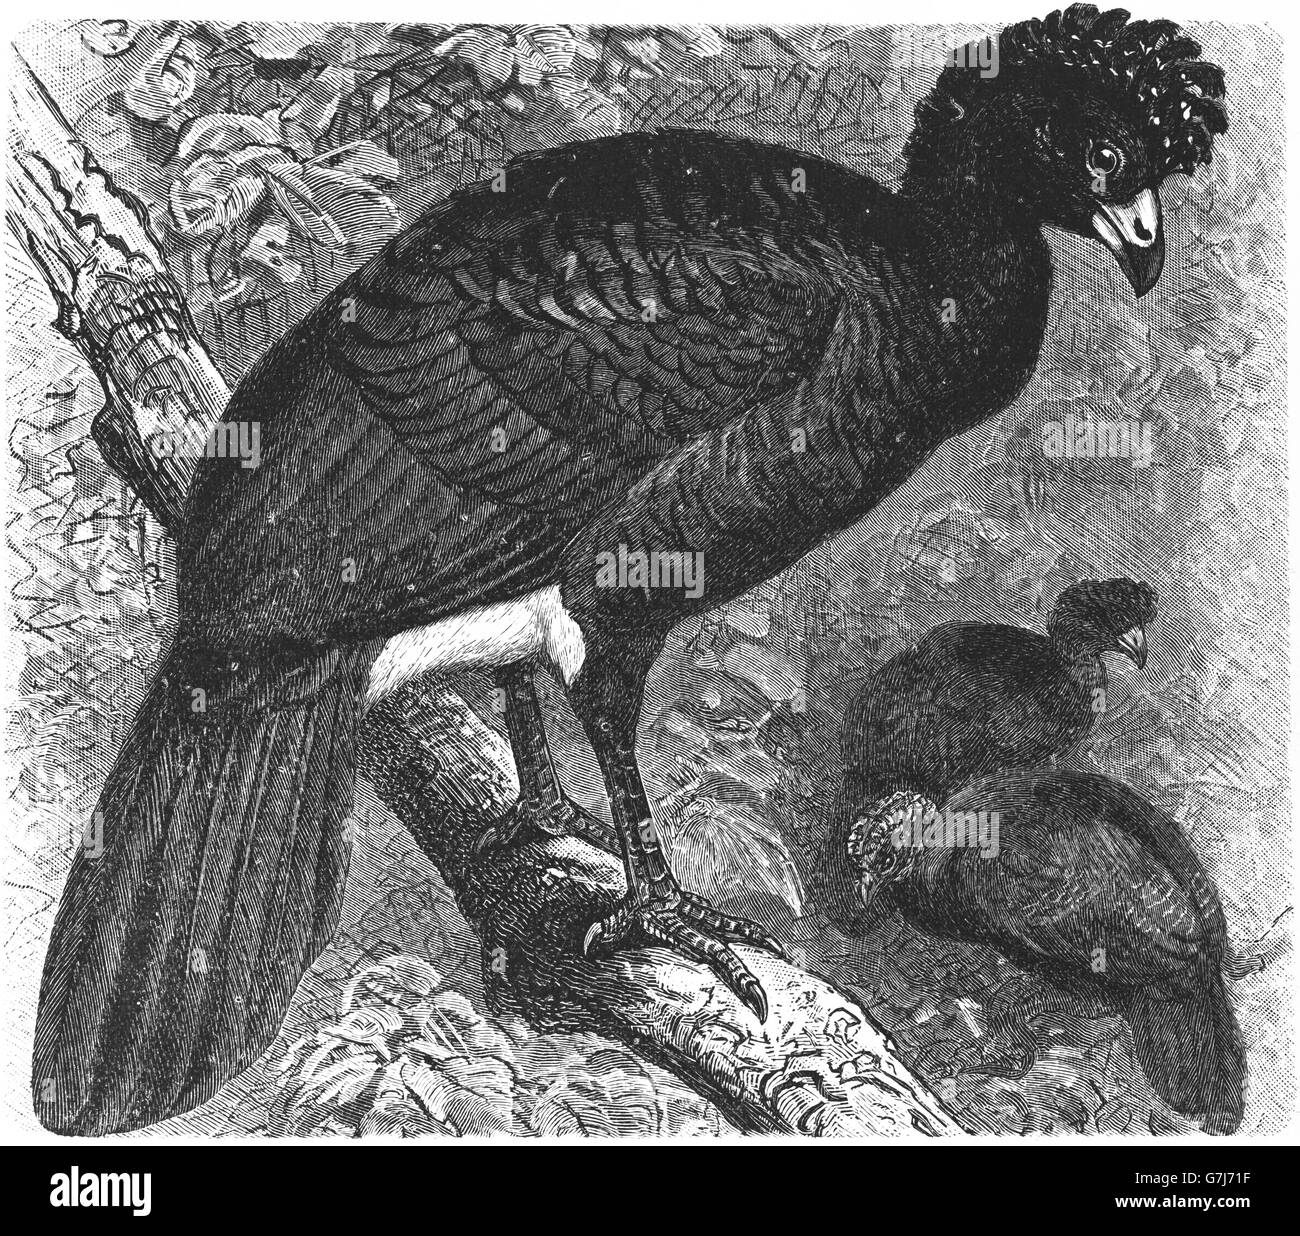 Black curassow, Crax alector, smooth-billed curassow, crested curassow, illustration from book dated 1904 - Stock Image